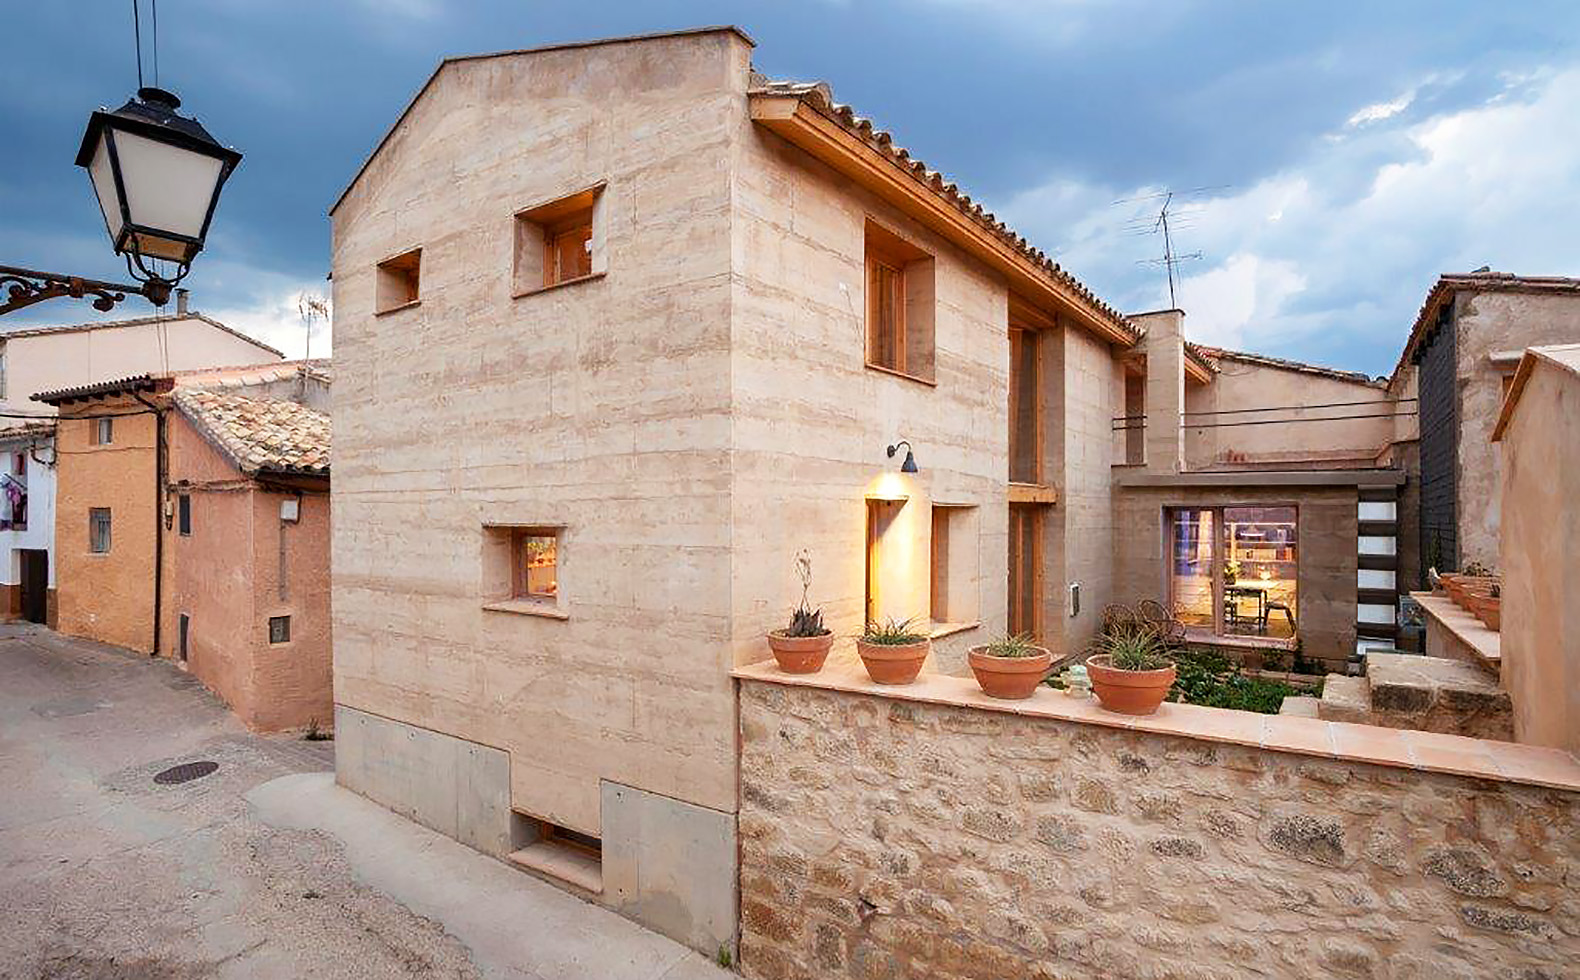 Award-winning rammed earth home in Spain halves normal CO2 emissions